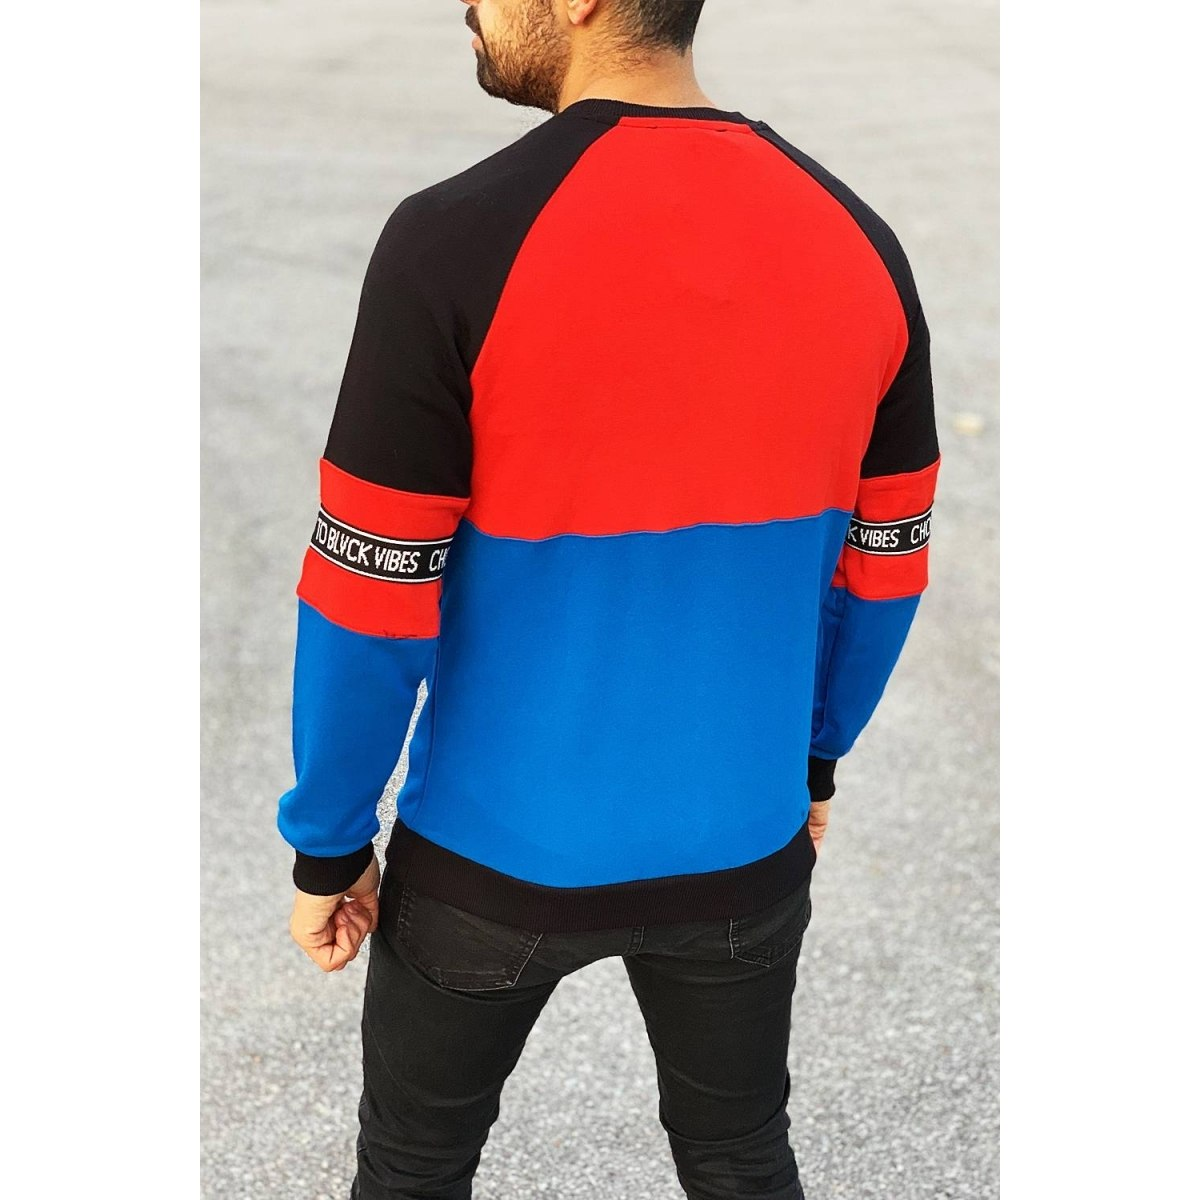 Blvck Vibes Sweatshirt in Red&Blue Mv Premium Brand - 1